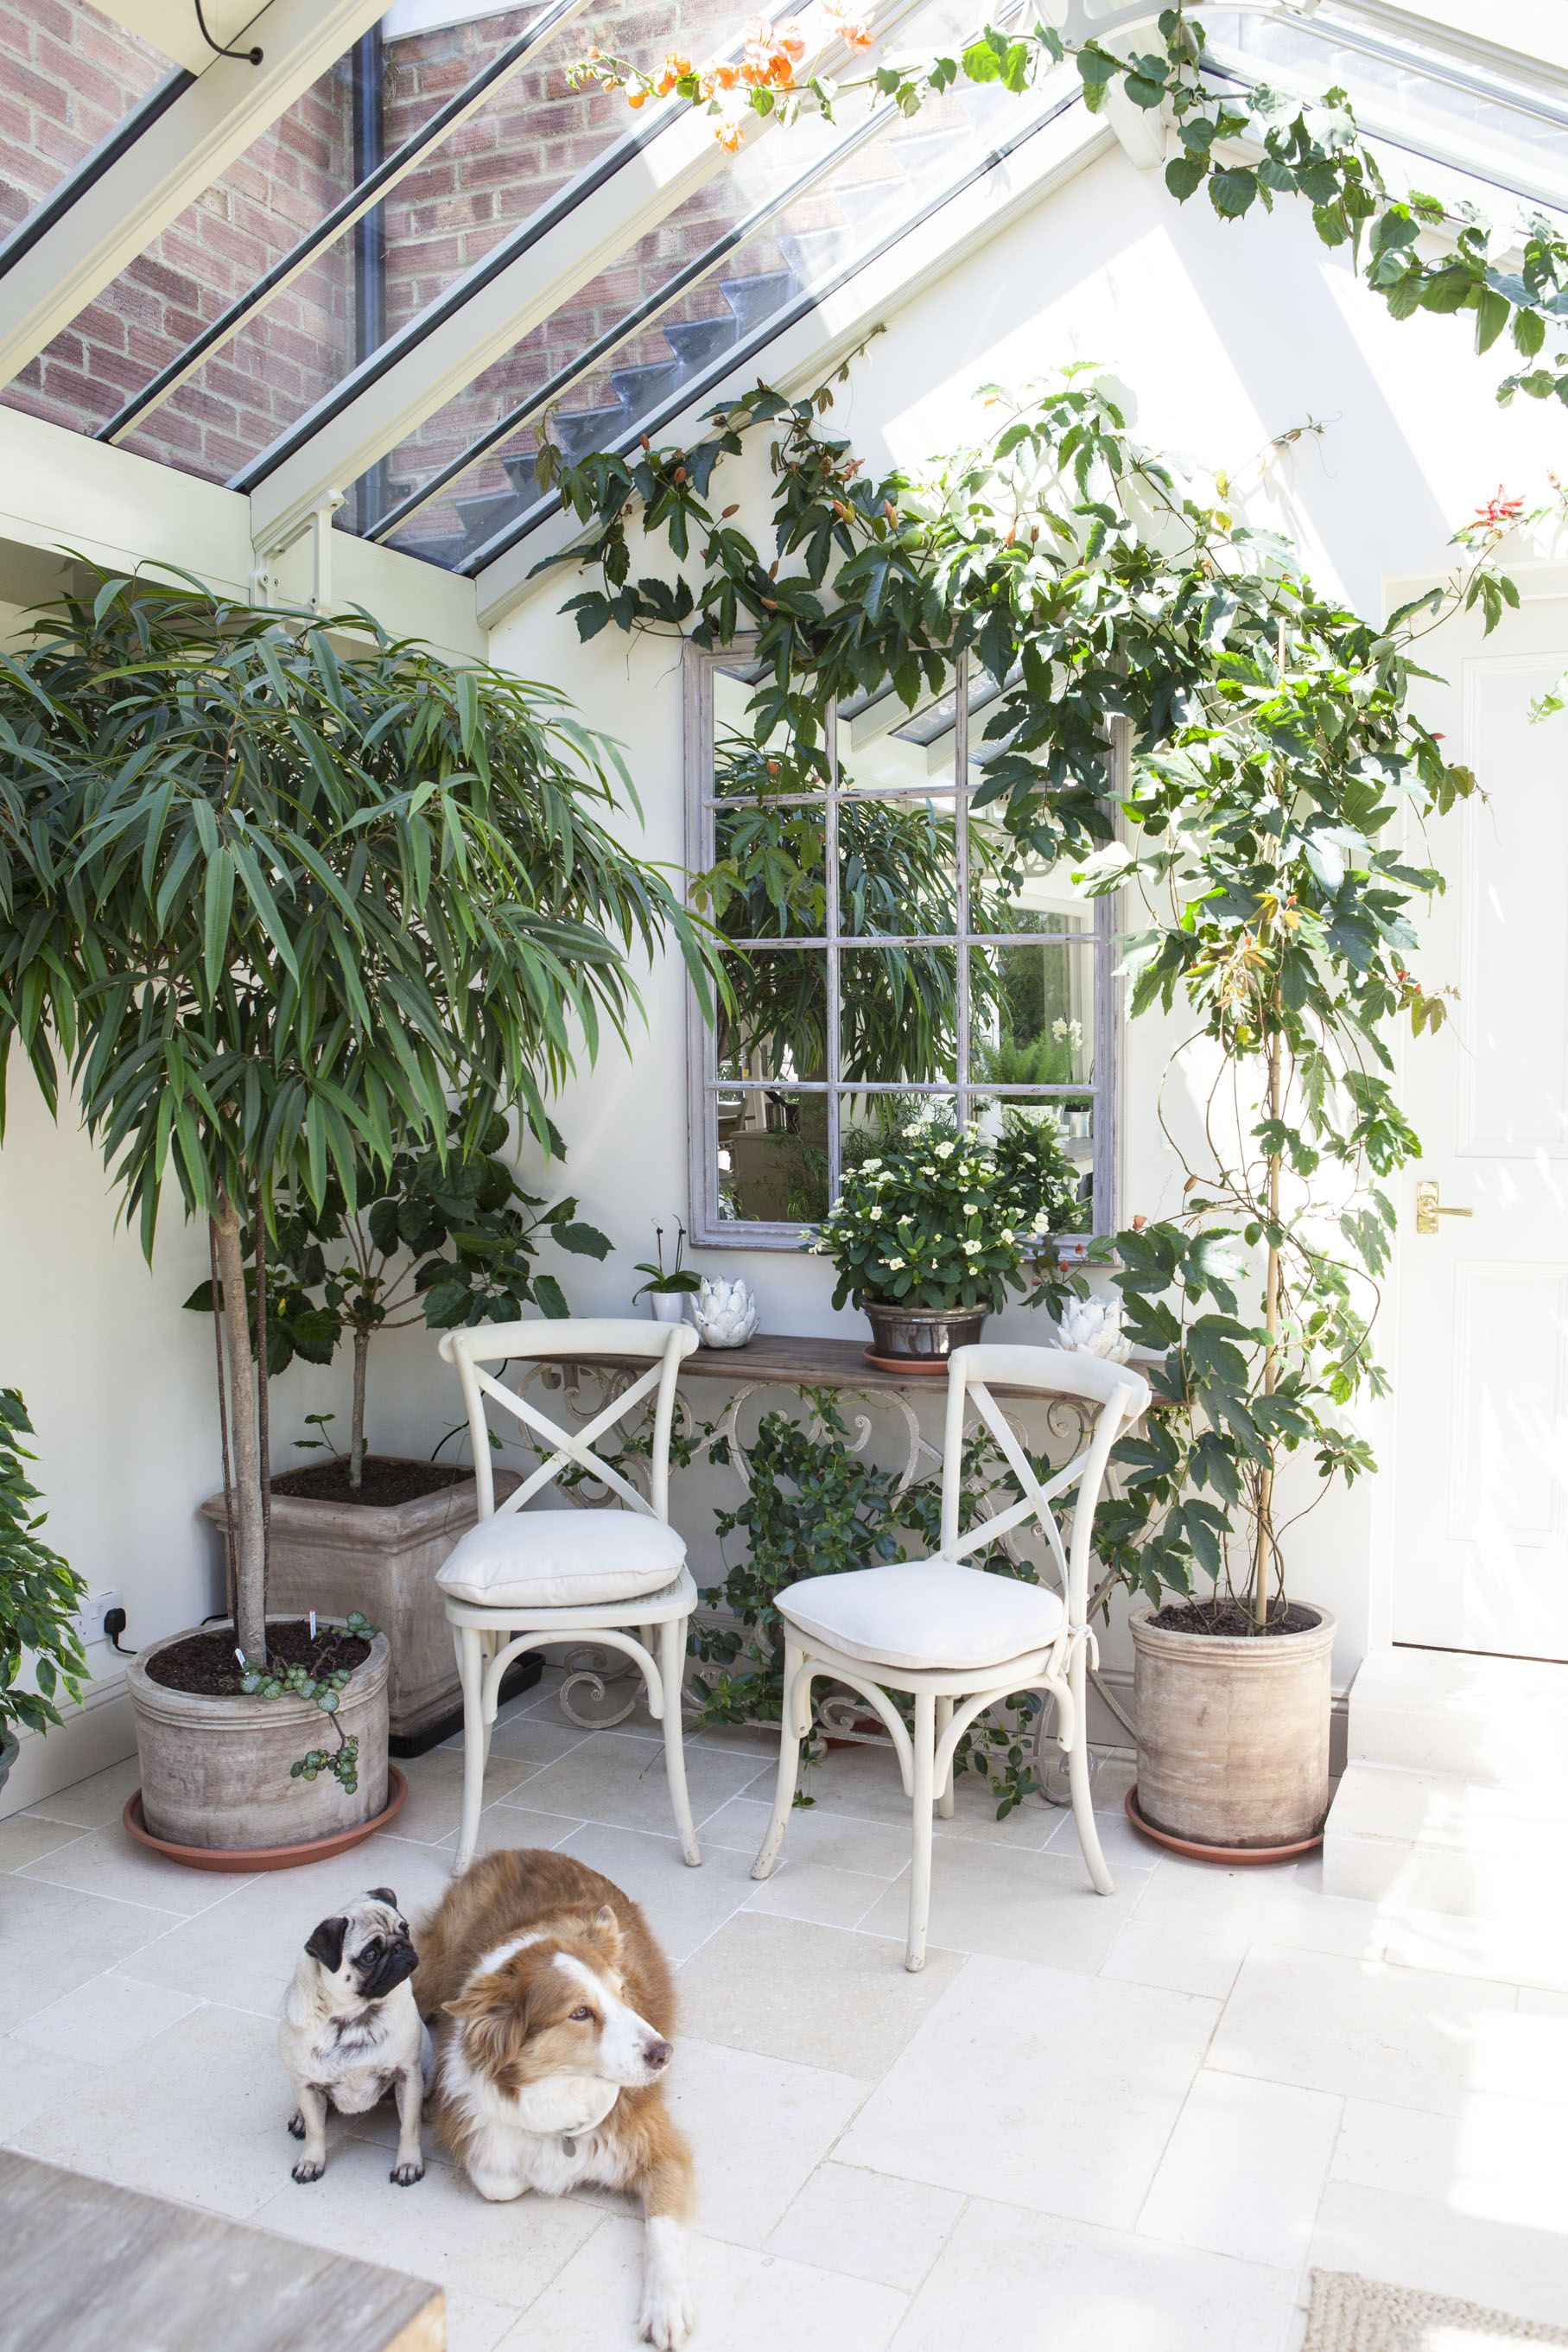 Lovely home for happy pug and collie. A wonderful sunny plant conservatory. www.alitex.co.uk